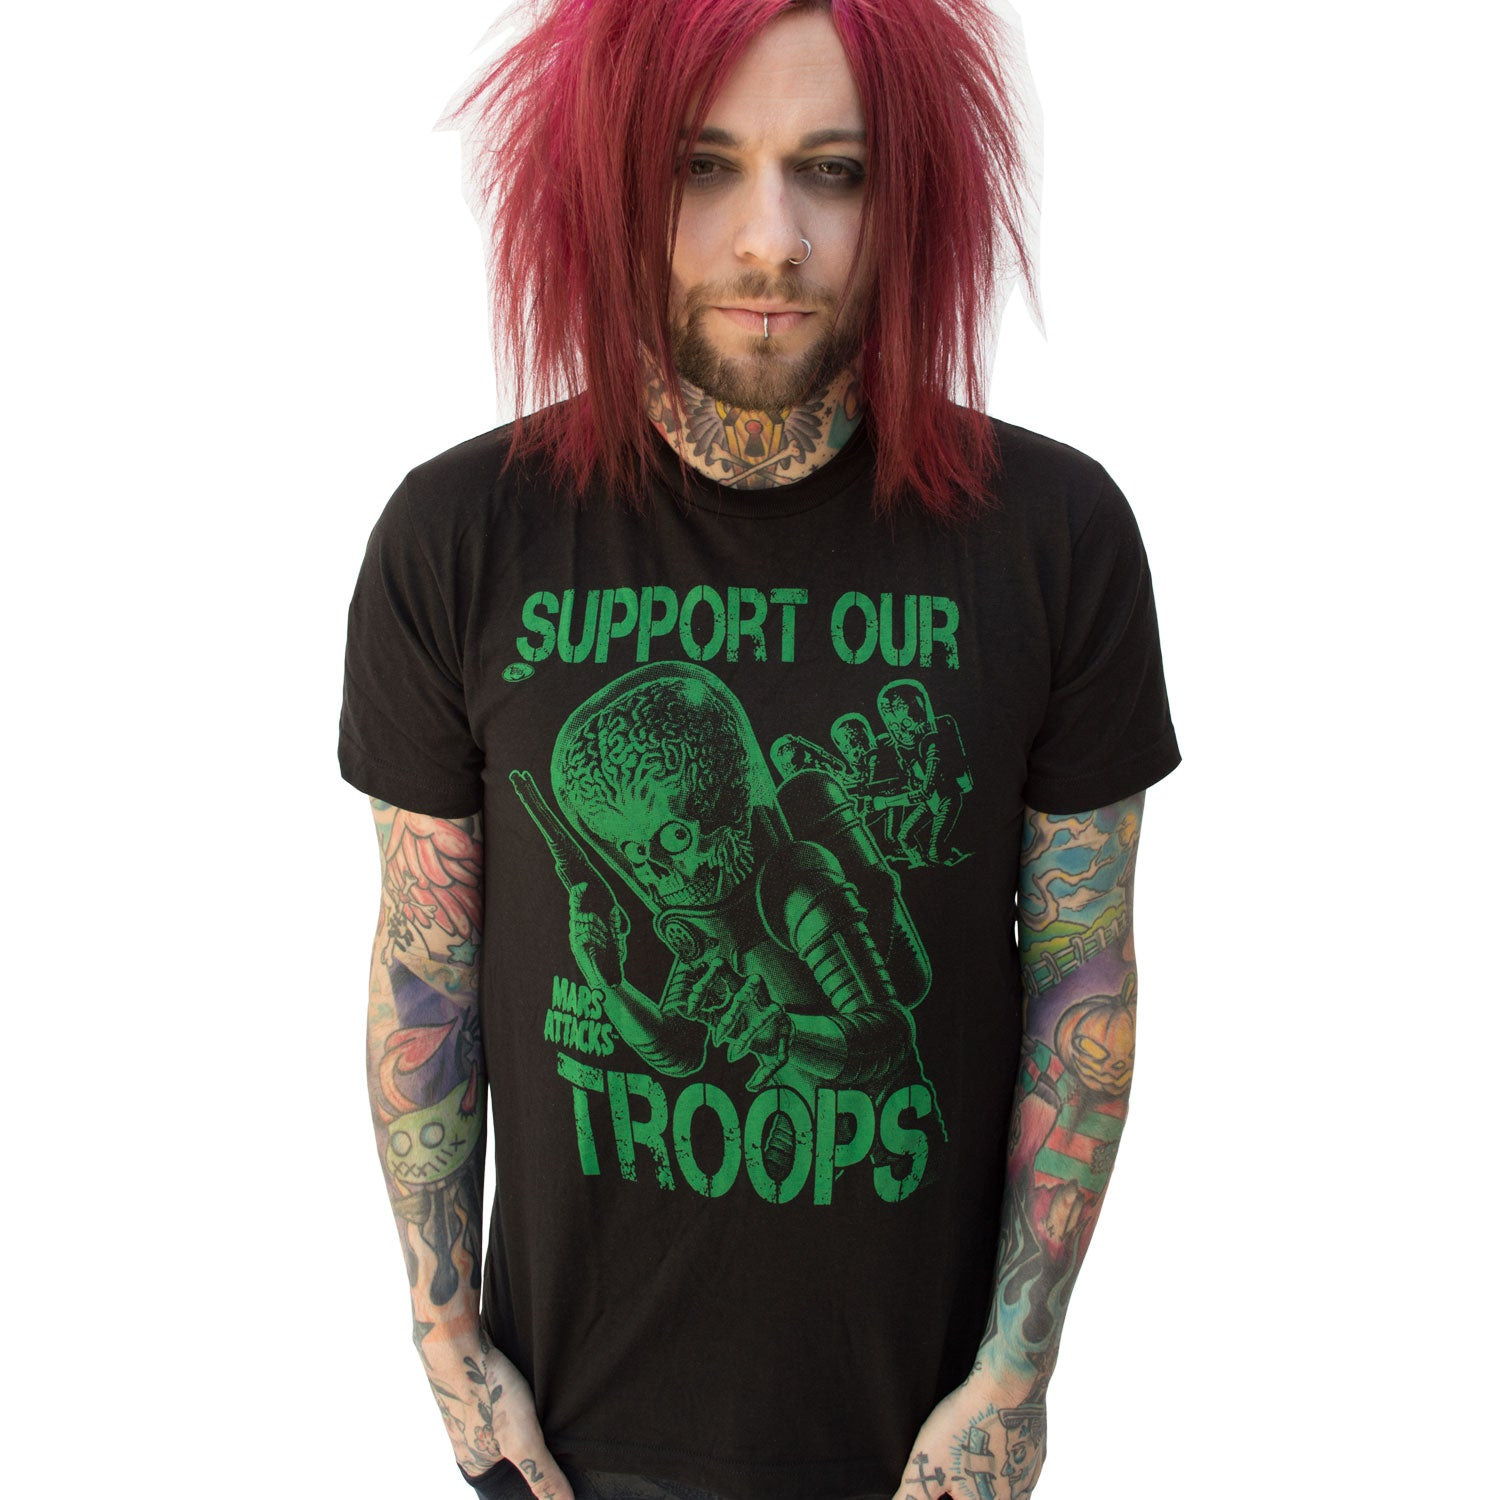 Mars Attacks Support Our Troops Tshirt